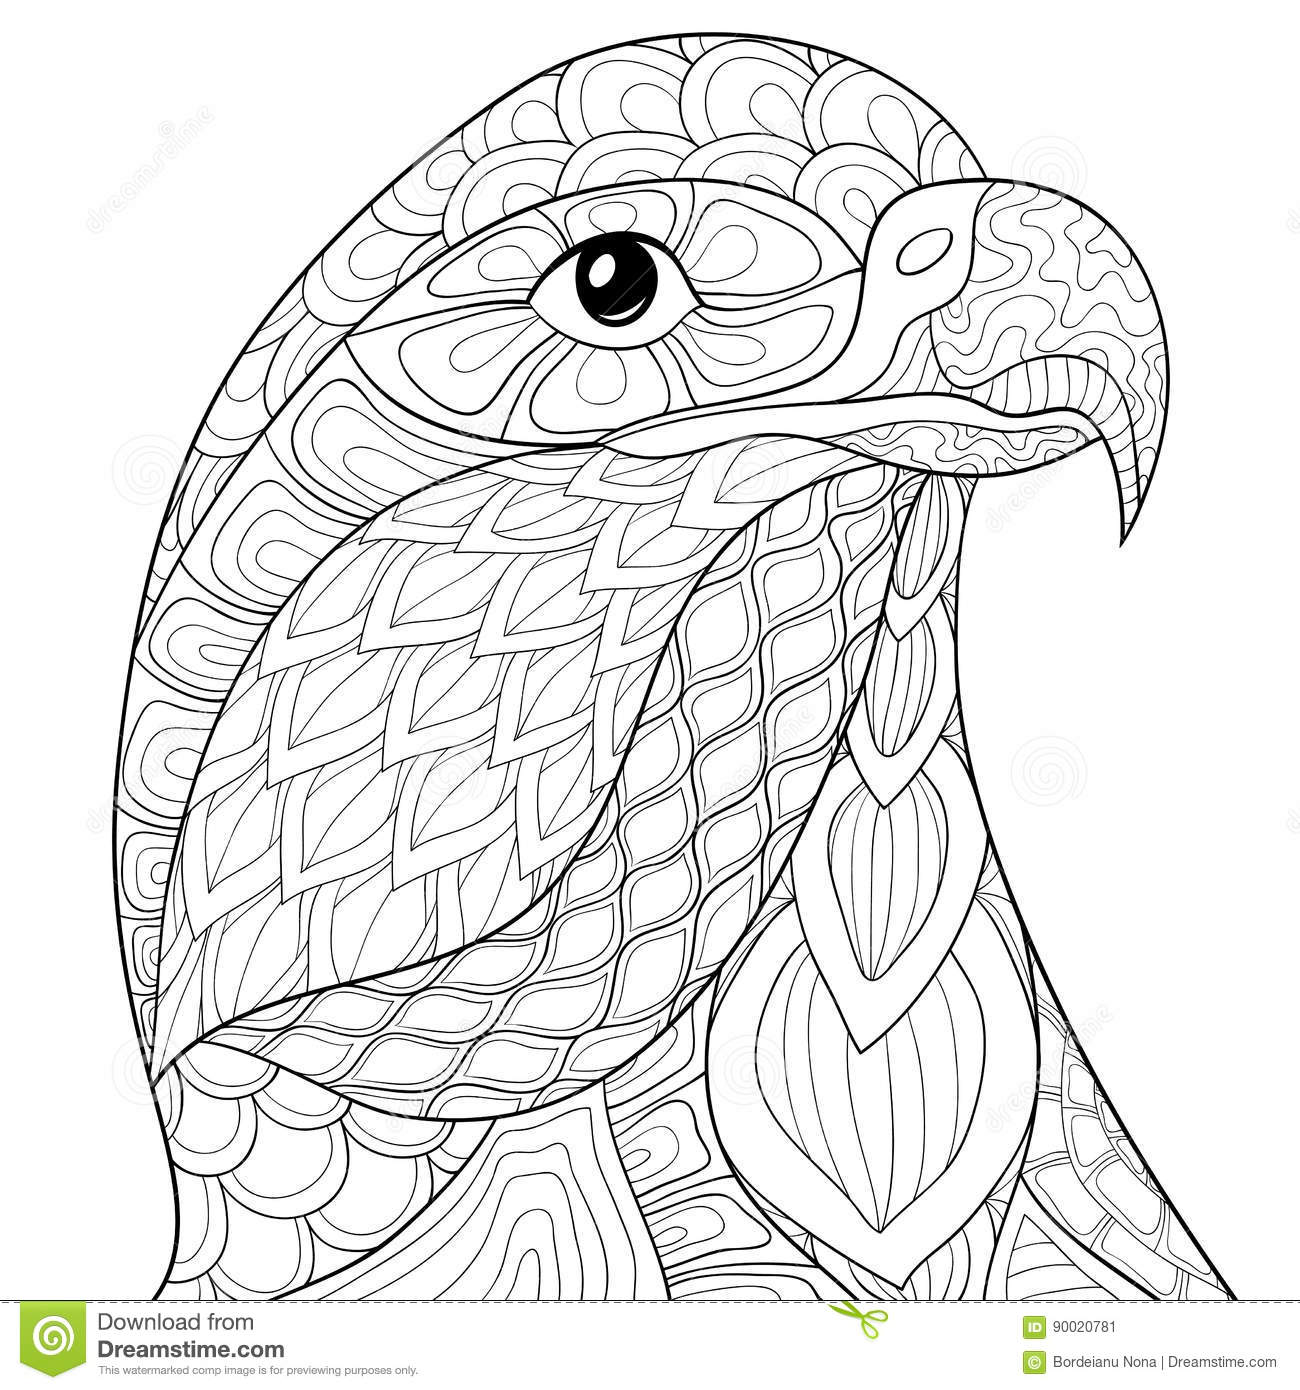 eagle adult coloring pages eagle hawk falcon coloring pages for independence day coloring eagle adult pages